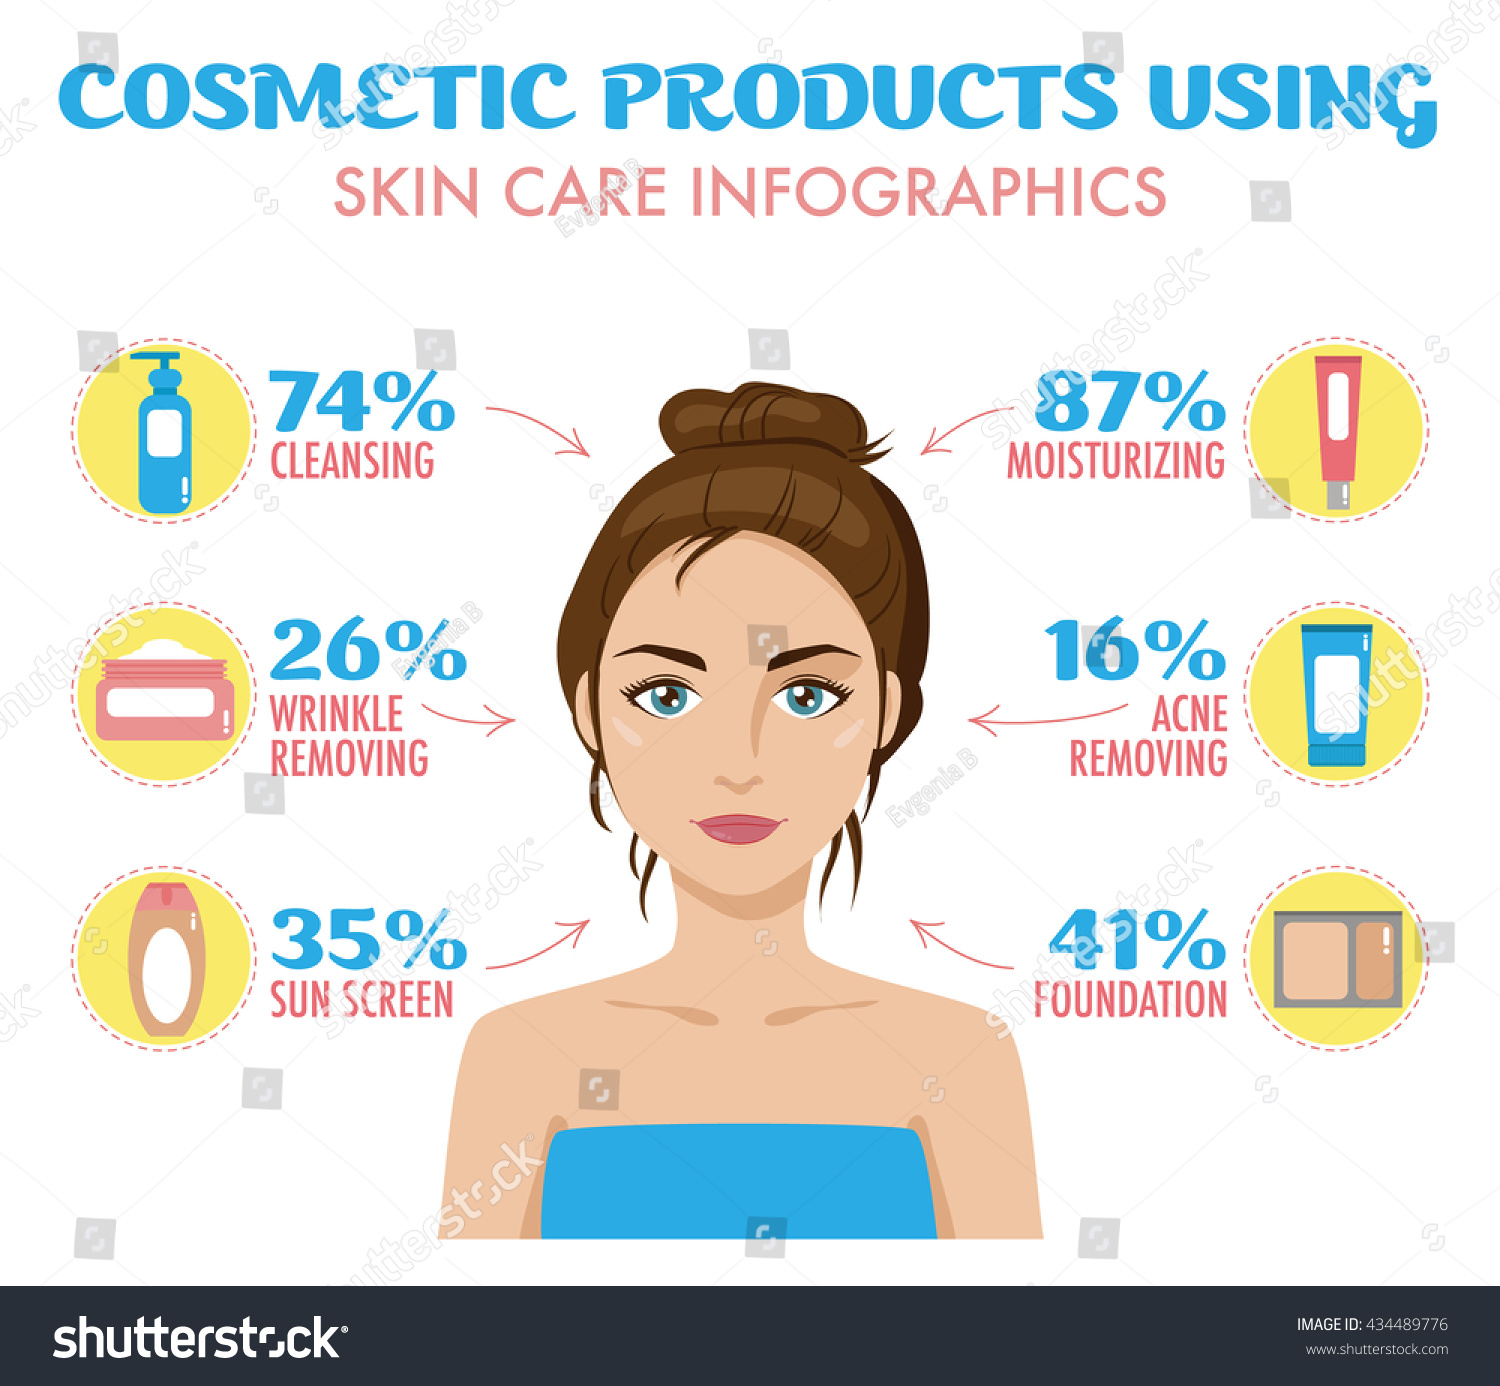 Skin Care Infographic: Cosmetic Products Face Creams Using Infographics Stock